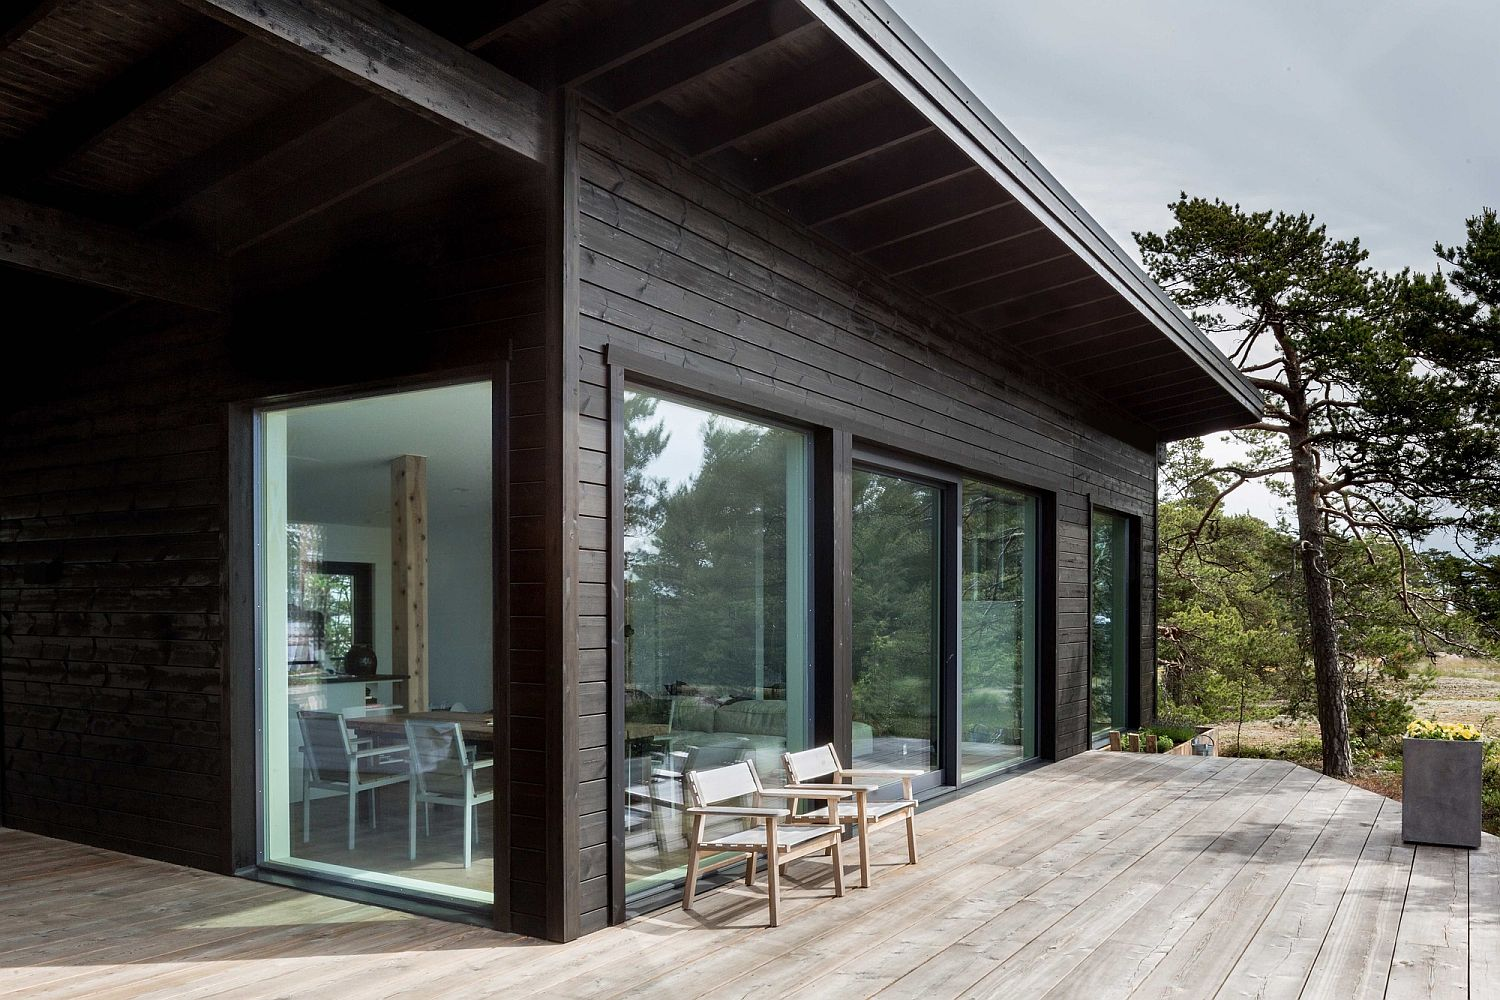 Exterior: Modern Scandinavian Log Cabin Set On A Beautiful Baltic